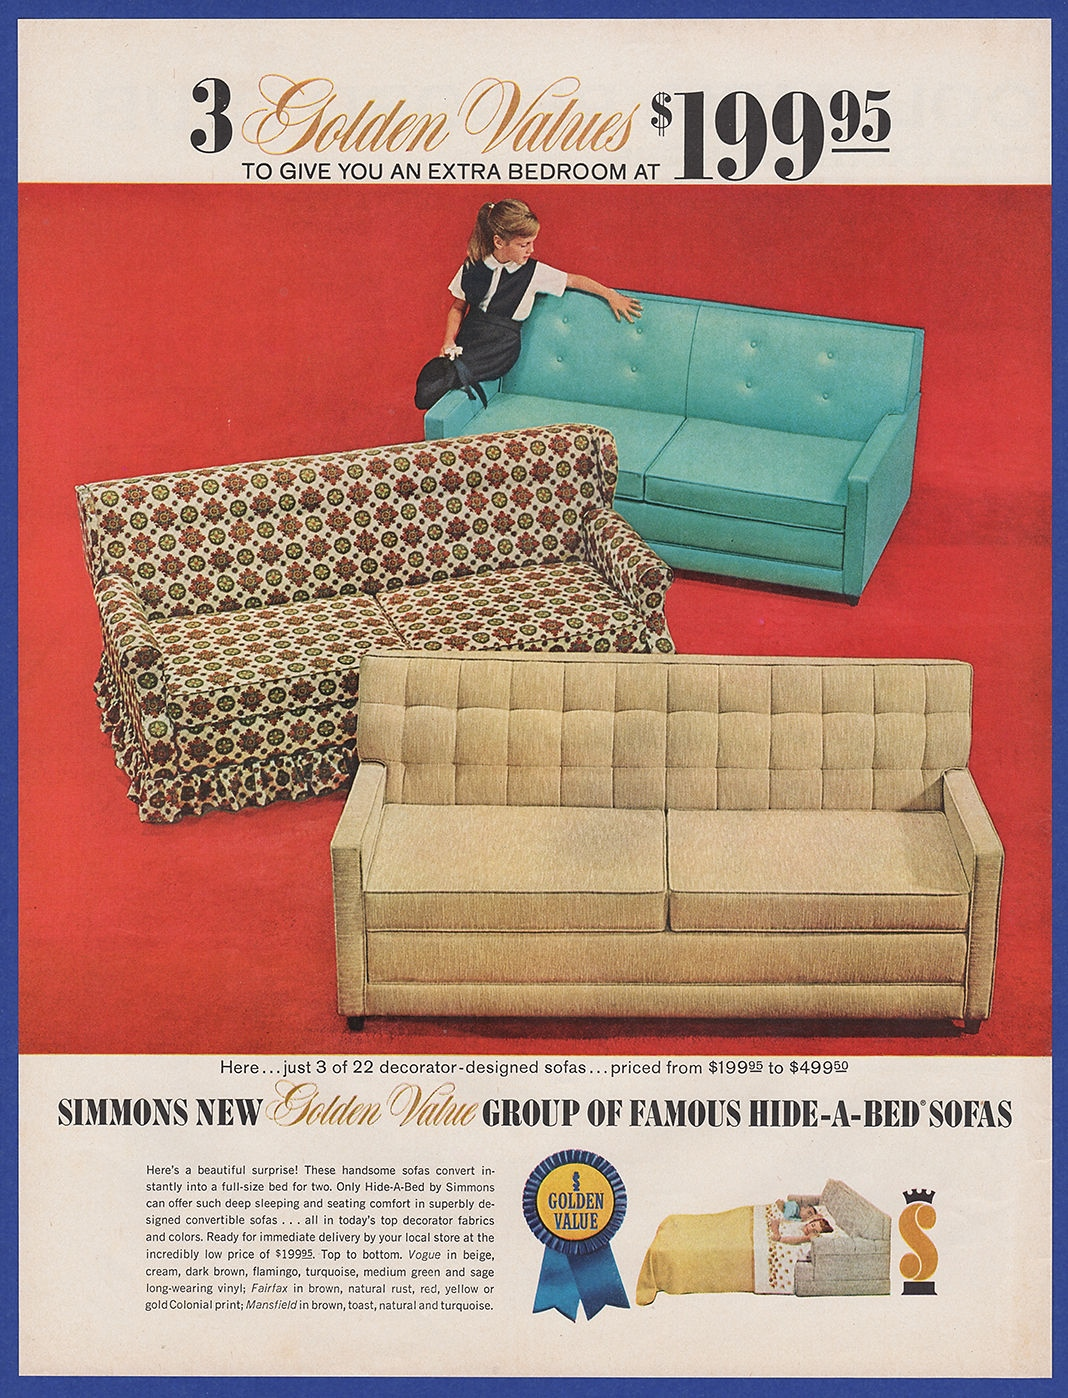 Sofa 60s Details About Vintage 1963 Simmons Golden Value Hide A Bed Sofa Furniture Decor Print Ad 60 S